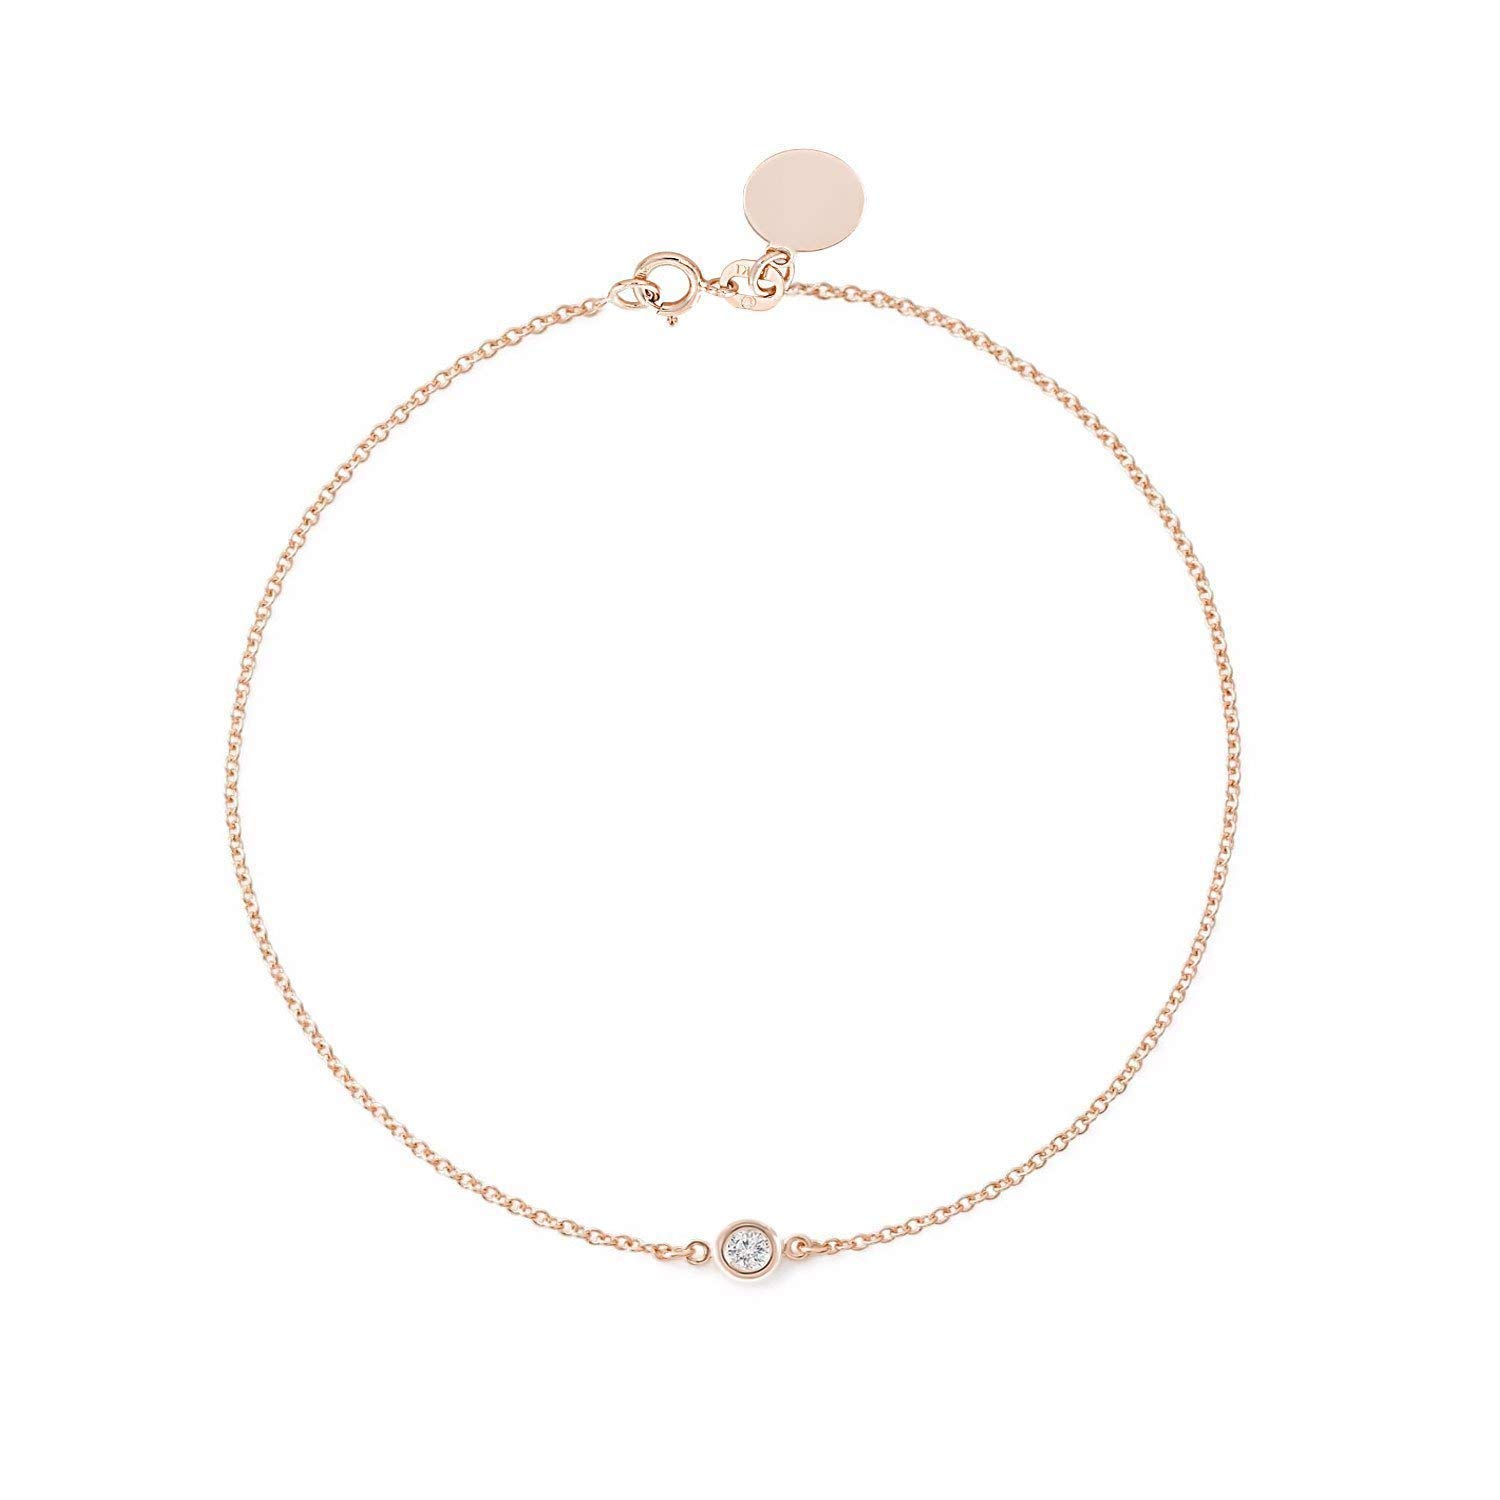 f4fd89649 Get Quotations · TousiAttar Solitaire Diamond Bracelet- Solid Rose Gold-14K  or 18K - Dainty and Simple